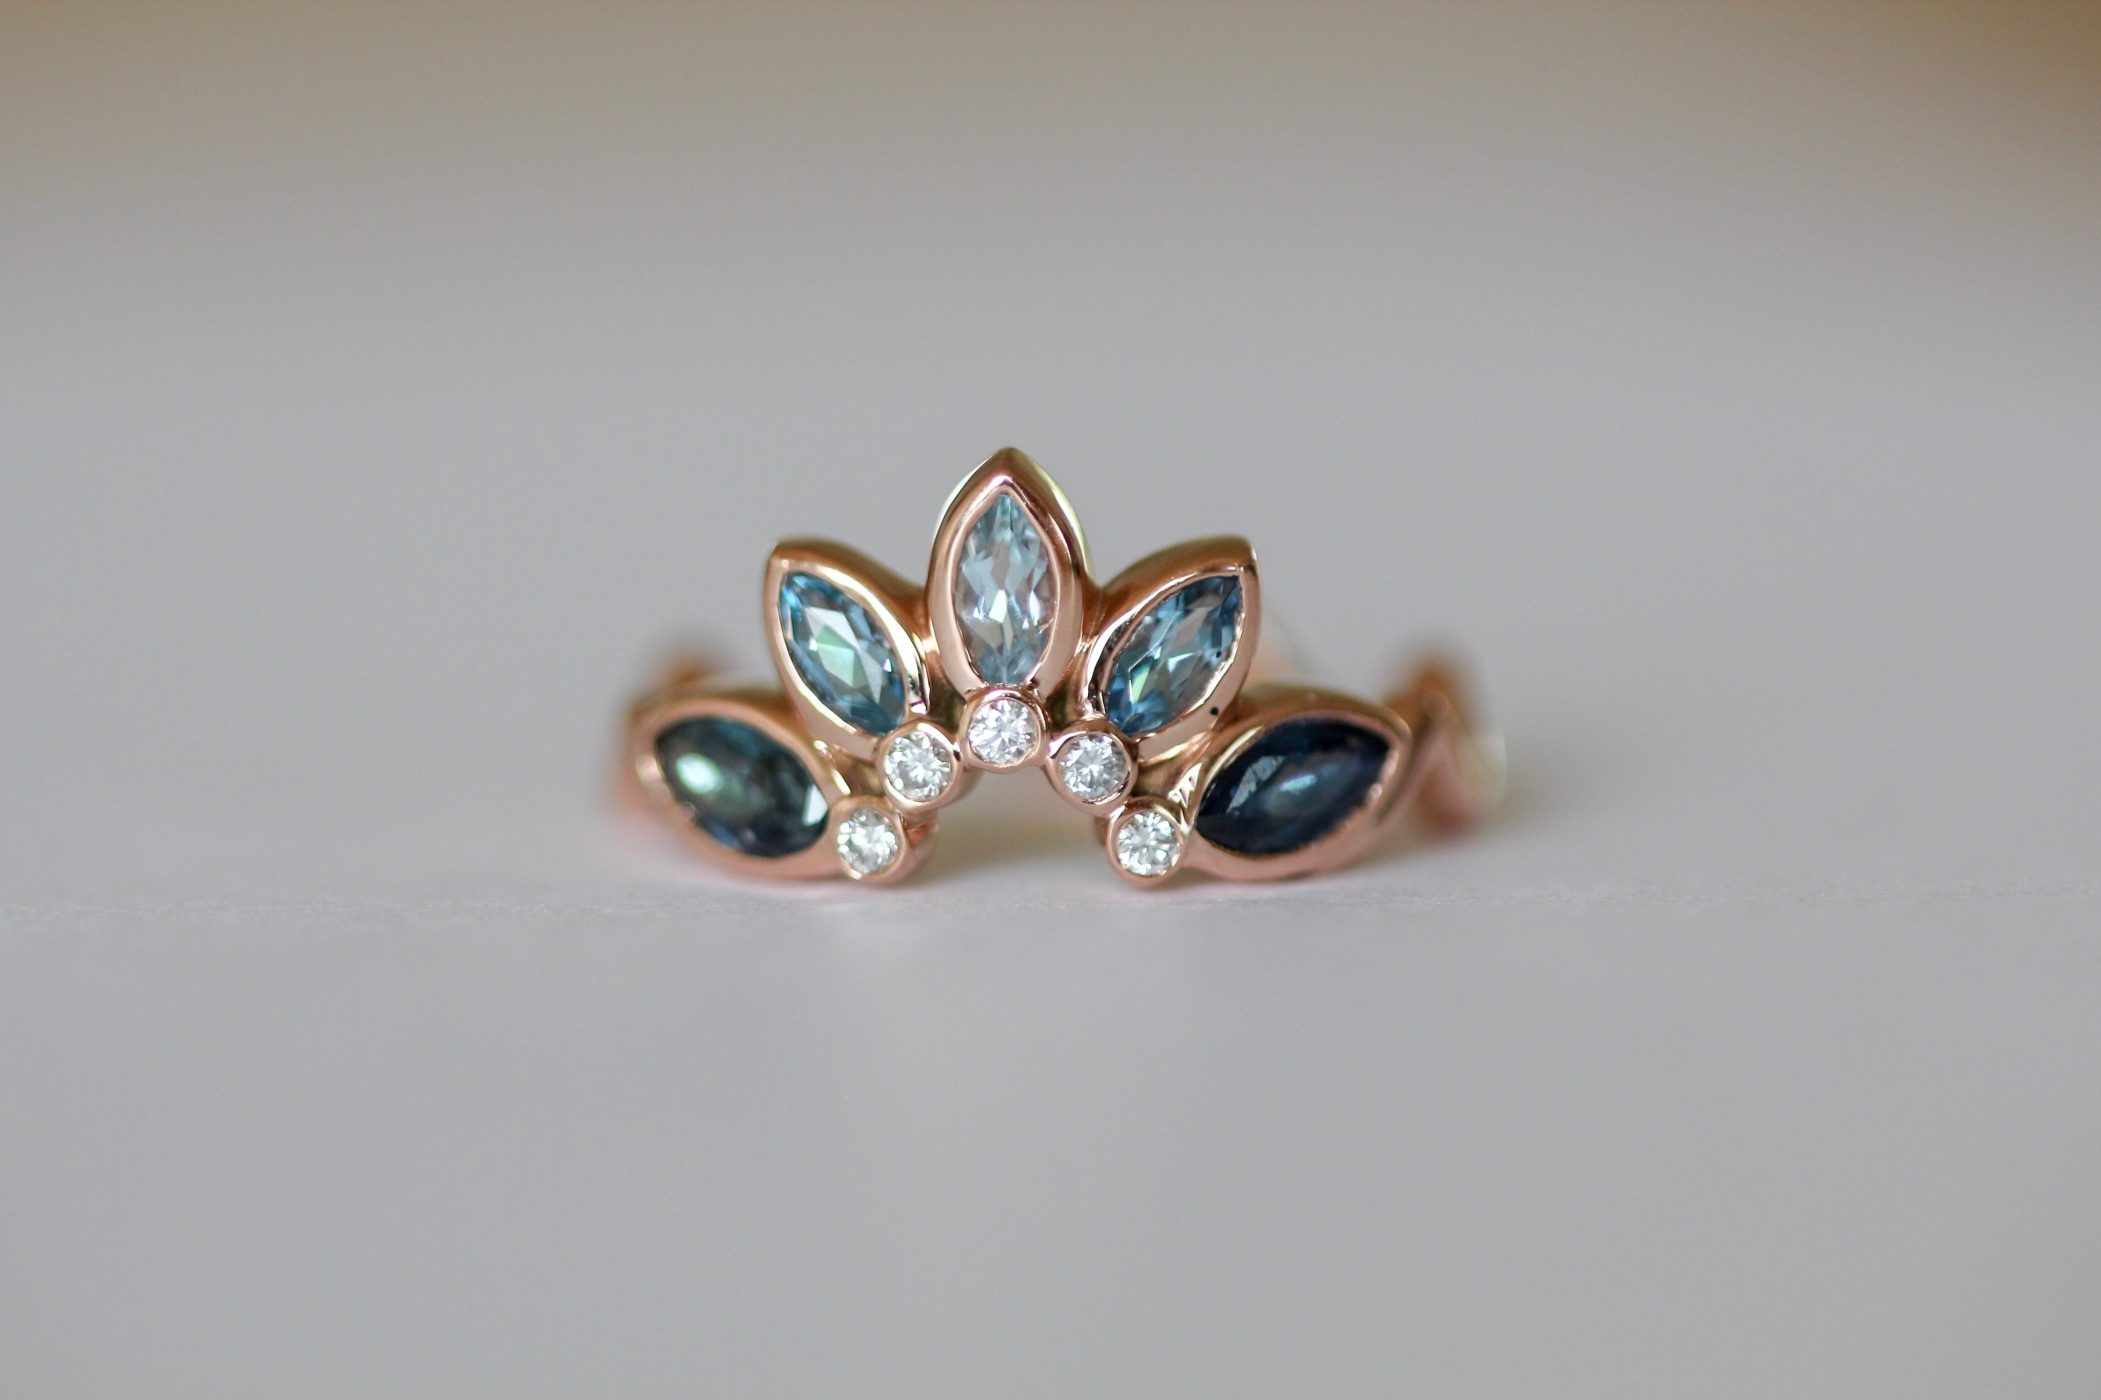 Statice Jewelry Ring - Designed by Jenny Bess